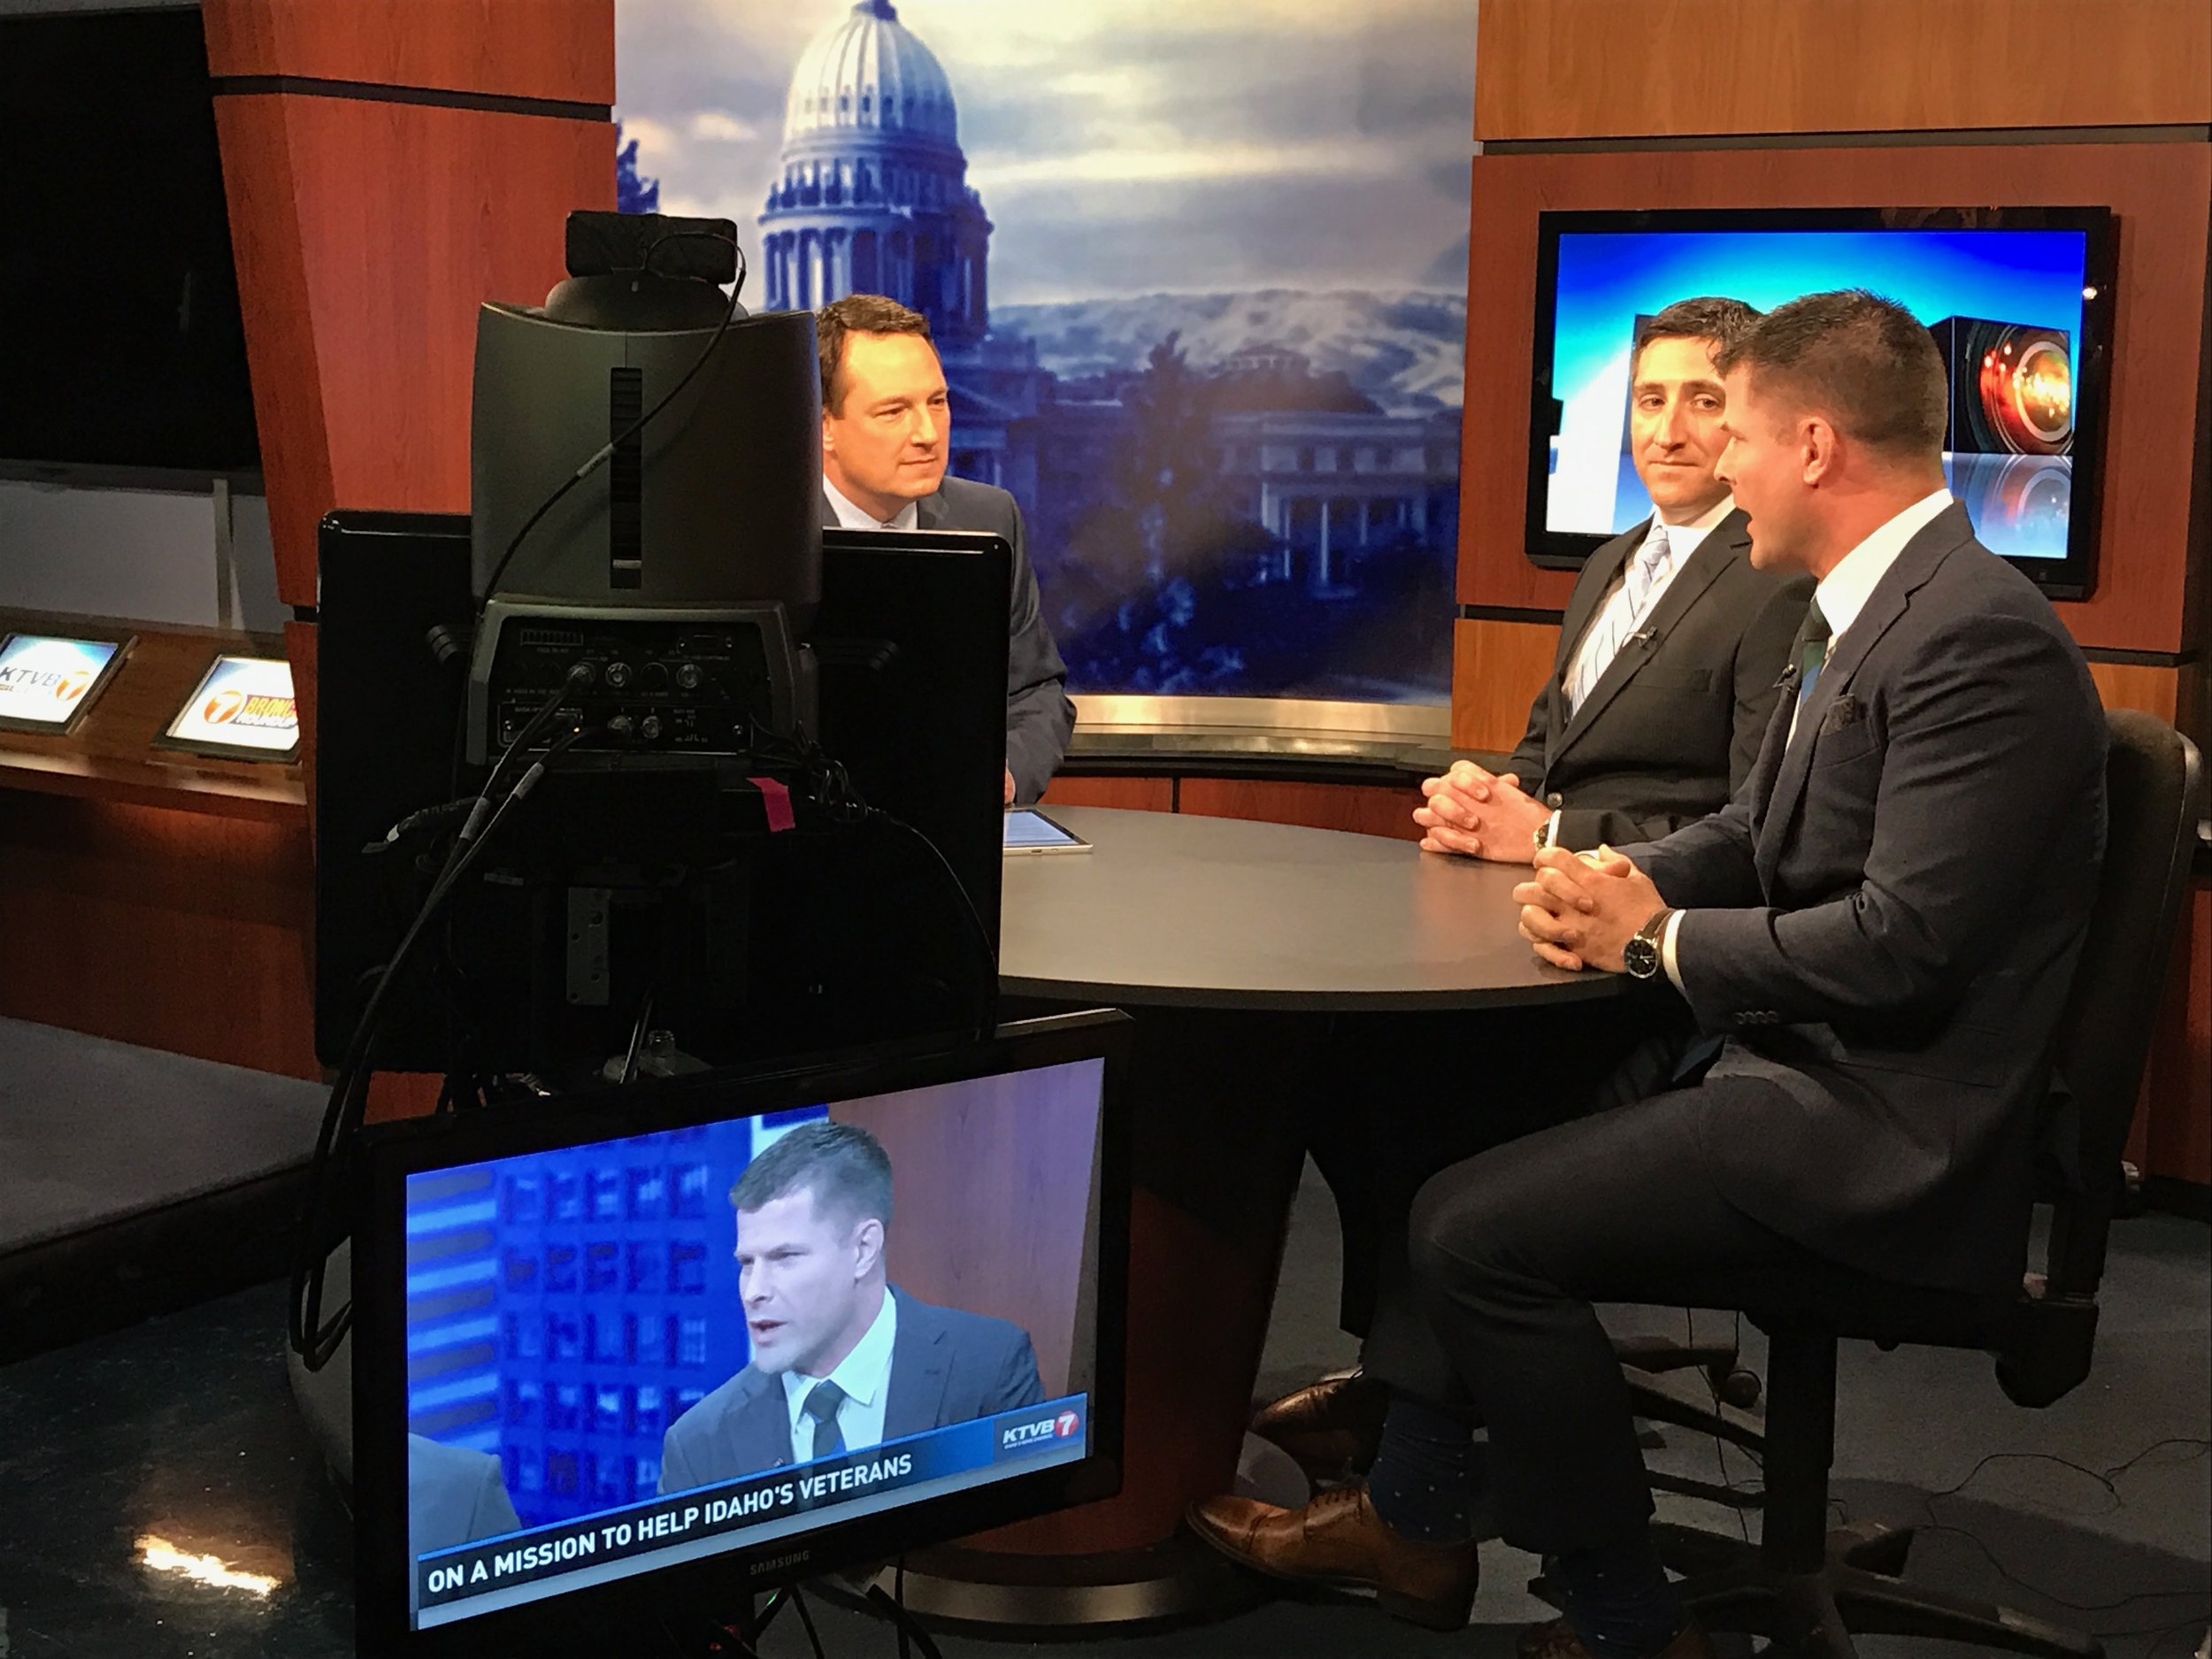 Behind the scenes on KTVB with Doug Petcash (left), Bryan Madden (middle), and Brian Stann (right).